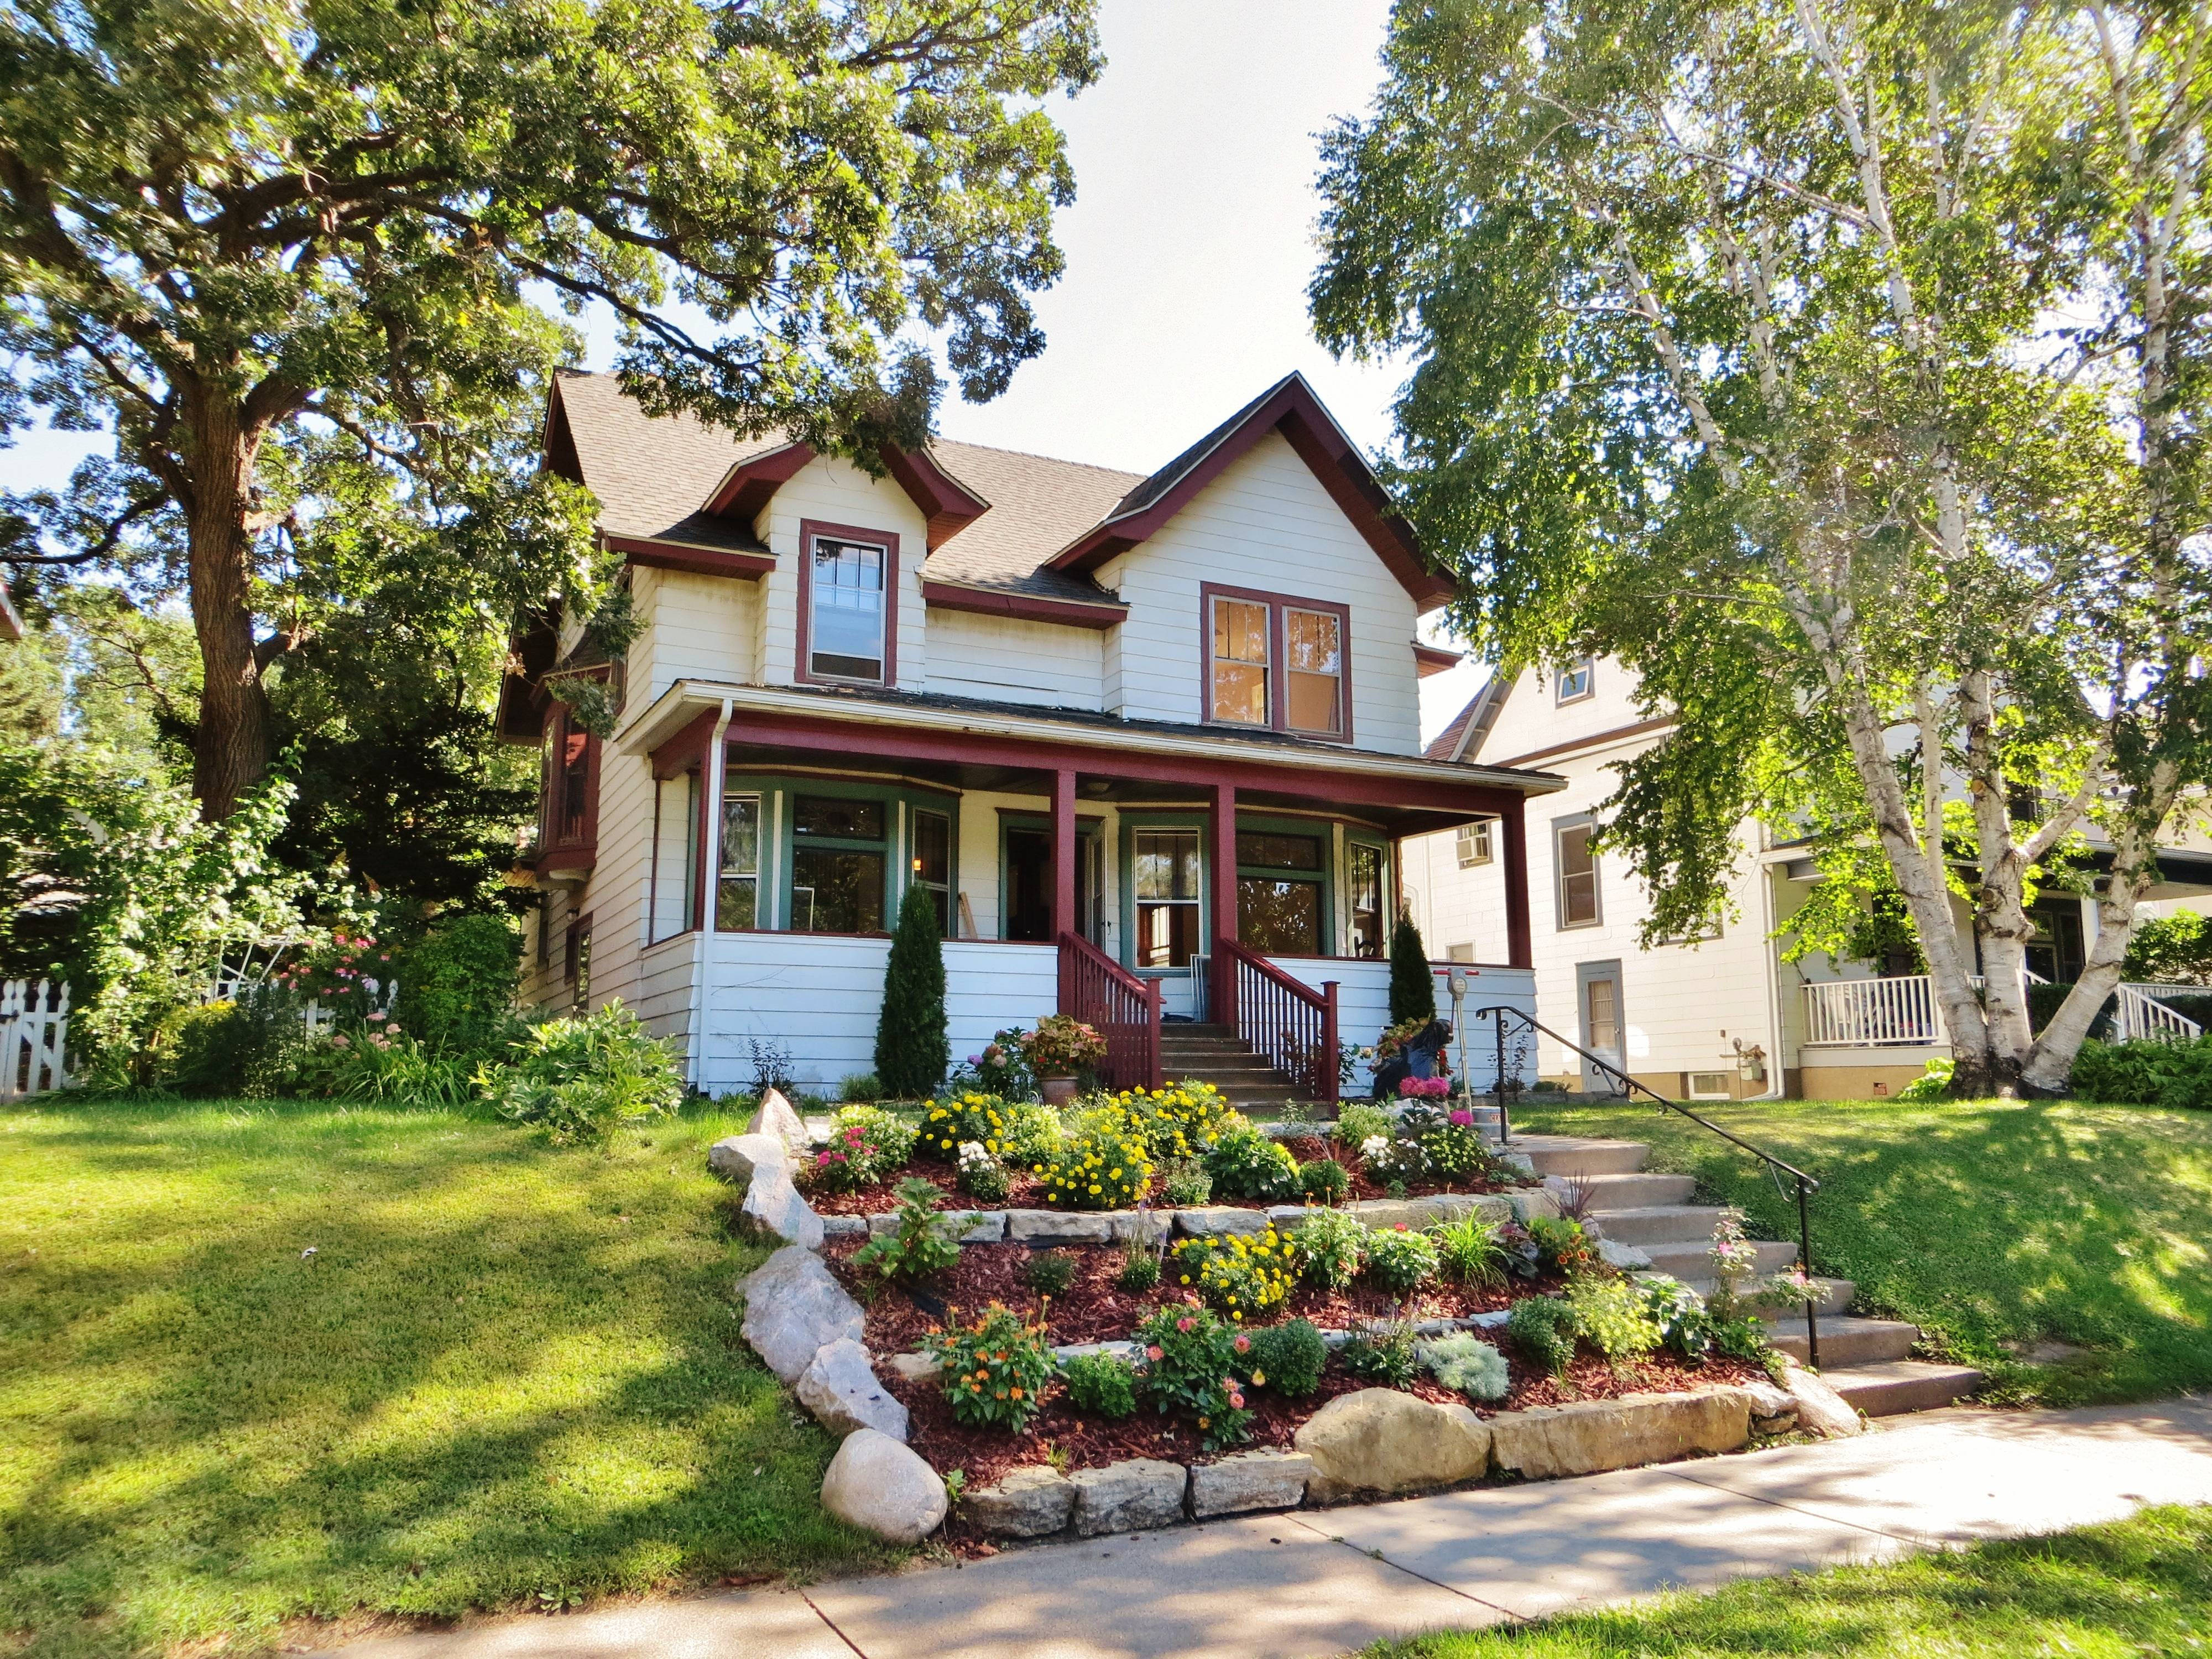 Charming Victorian home in St Paul for sale